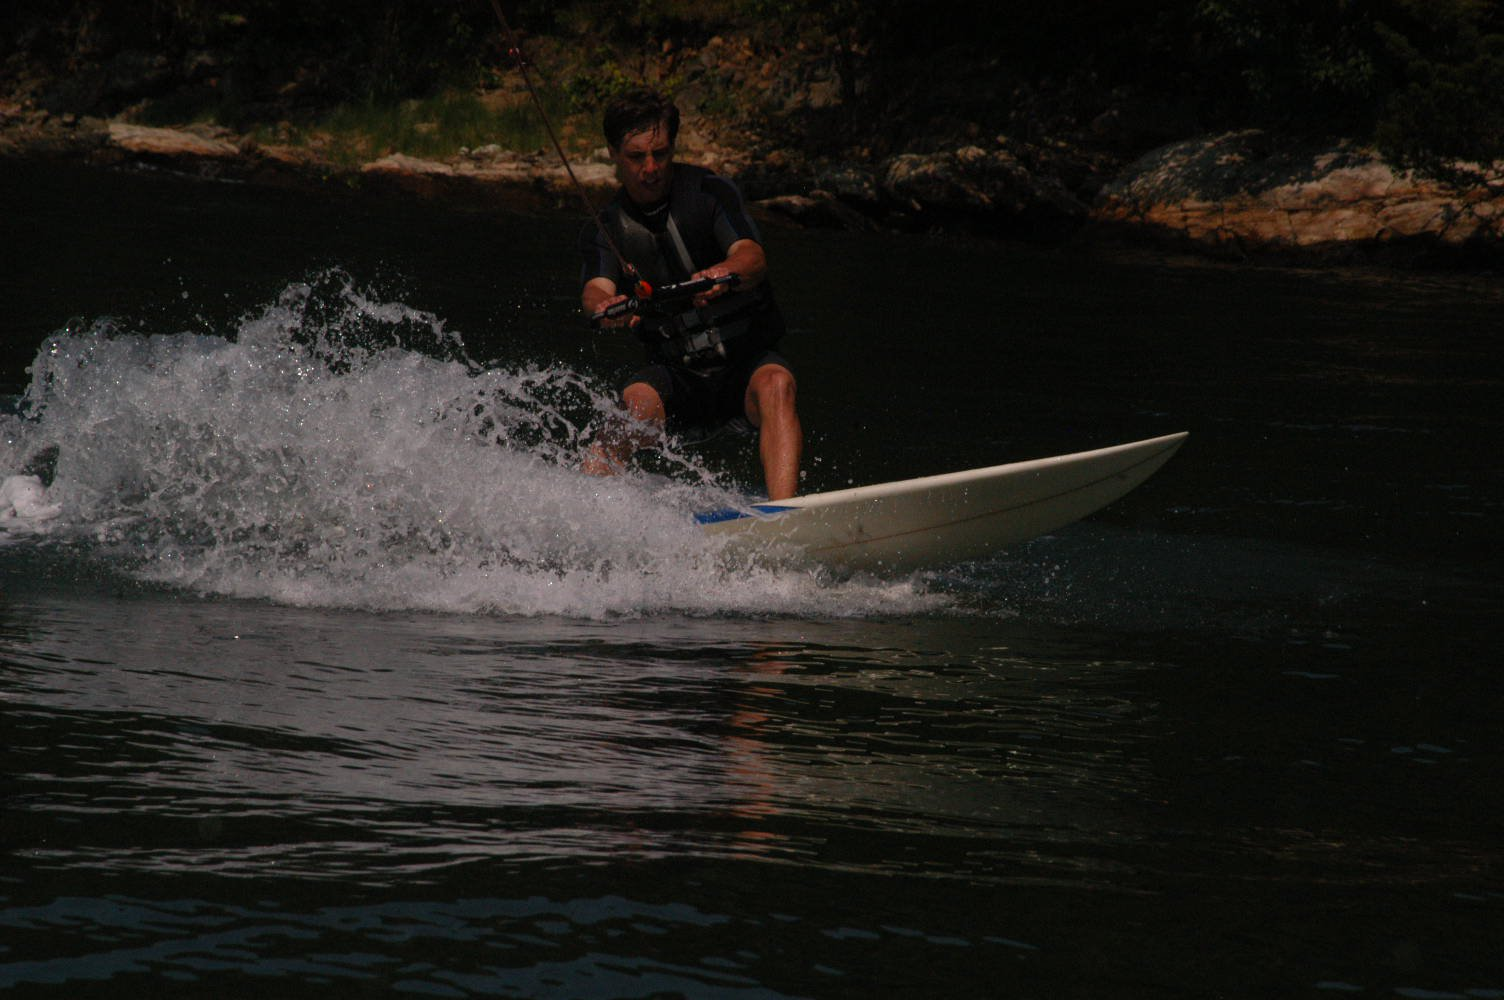 Surfing Behind a Boat